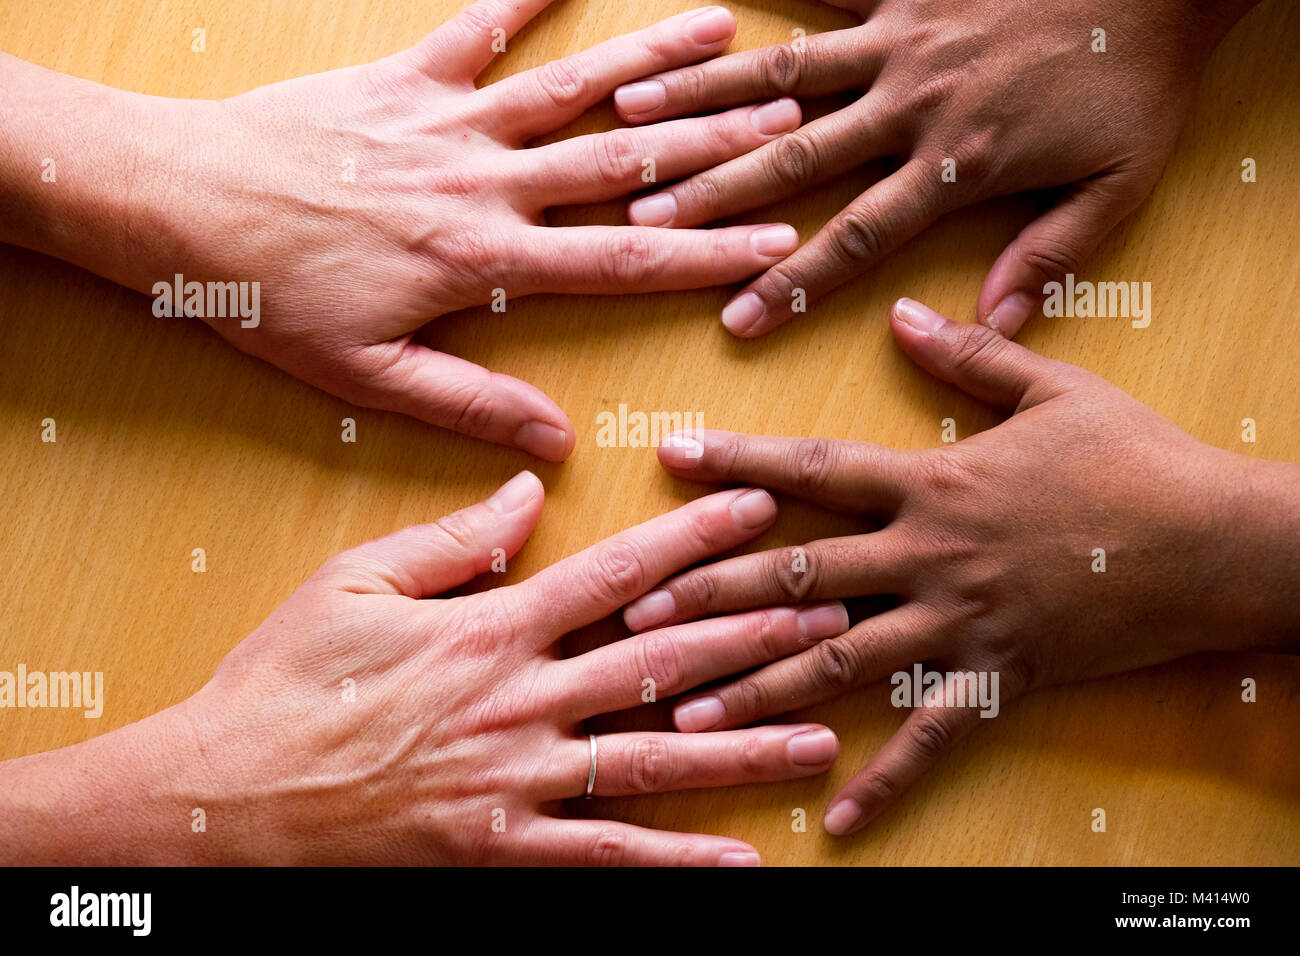 looking down on four fifty year old female hands spread out, lying flat on a table, the two hands on the left a - Stock Image